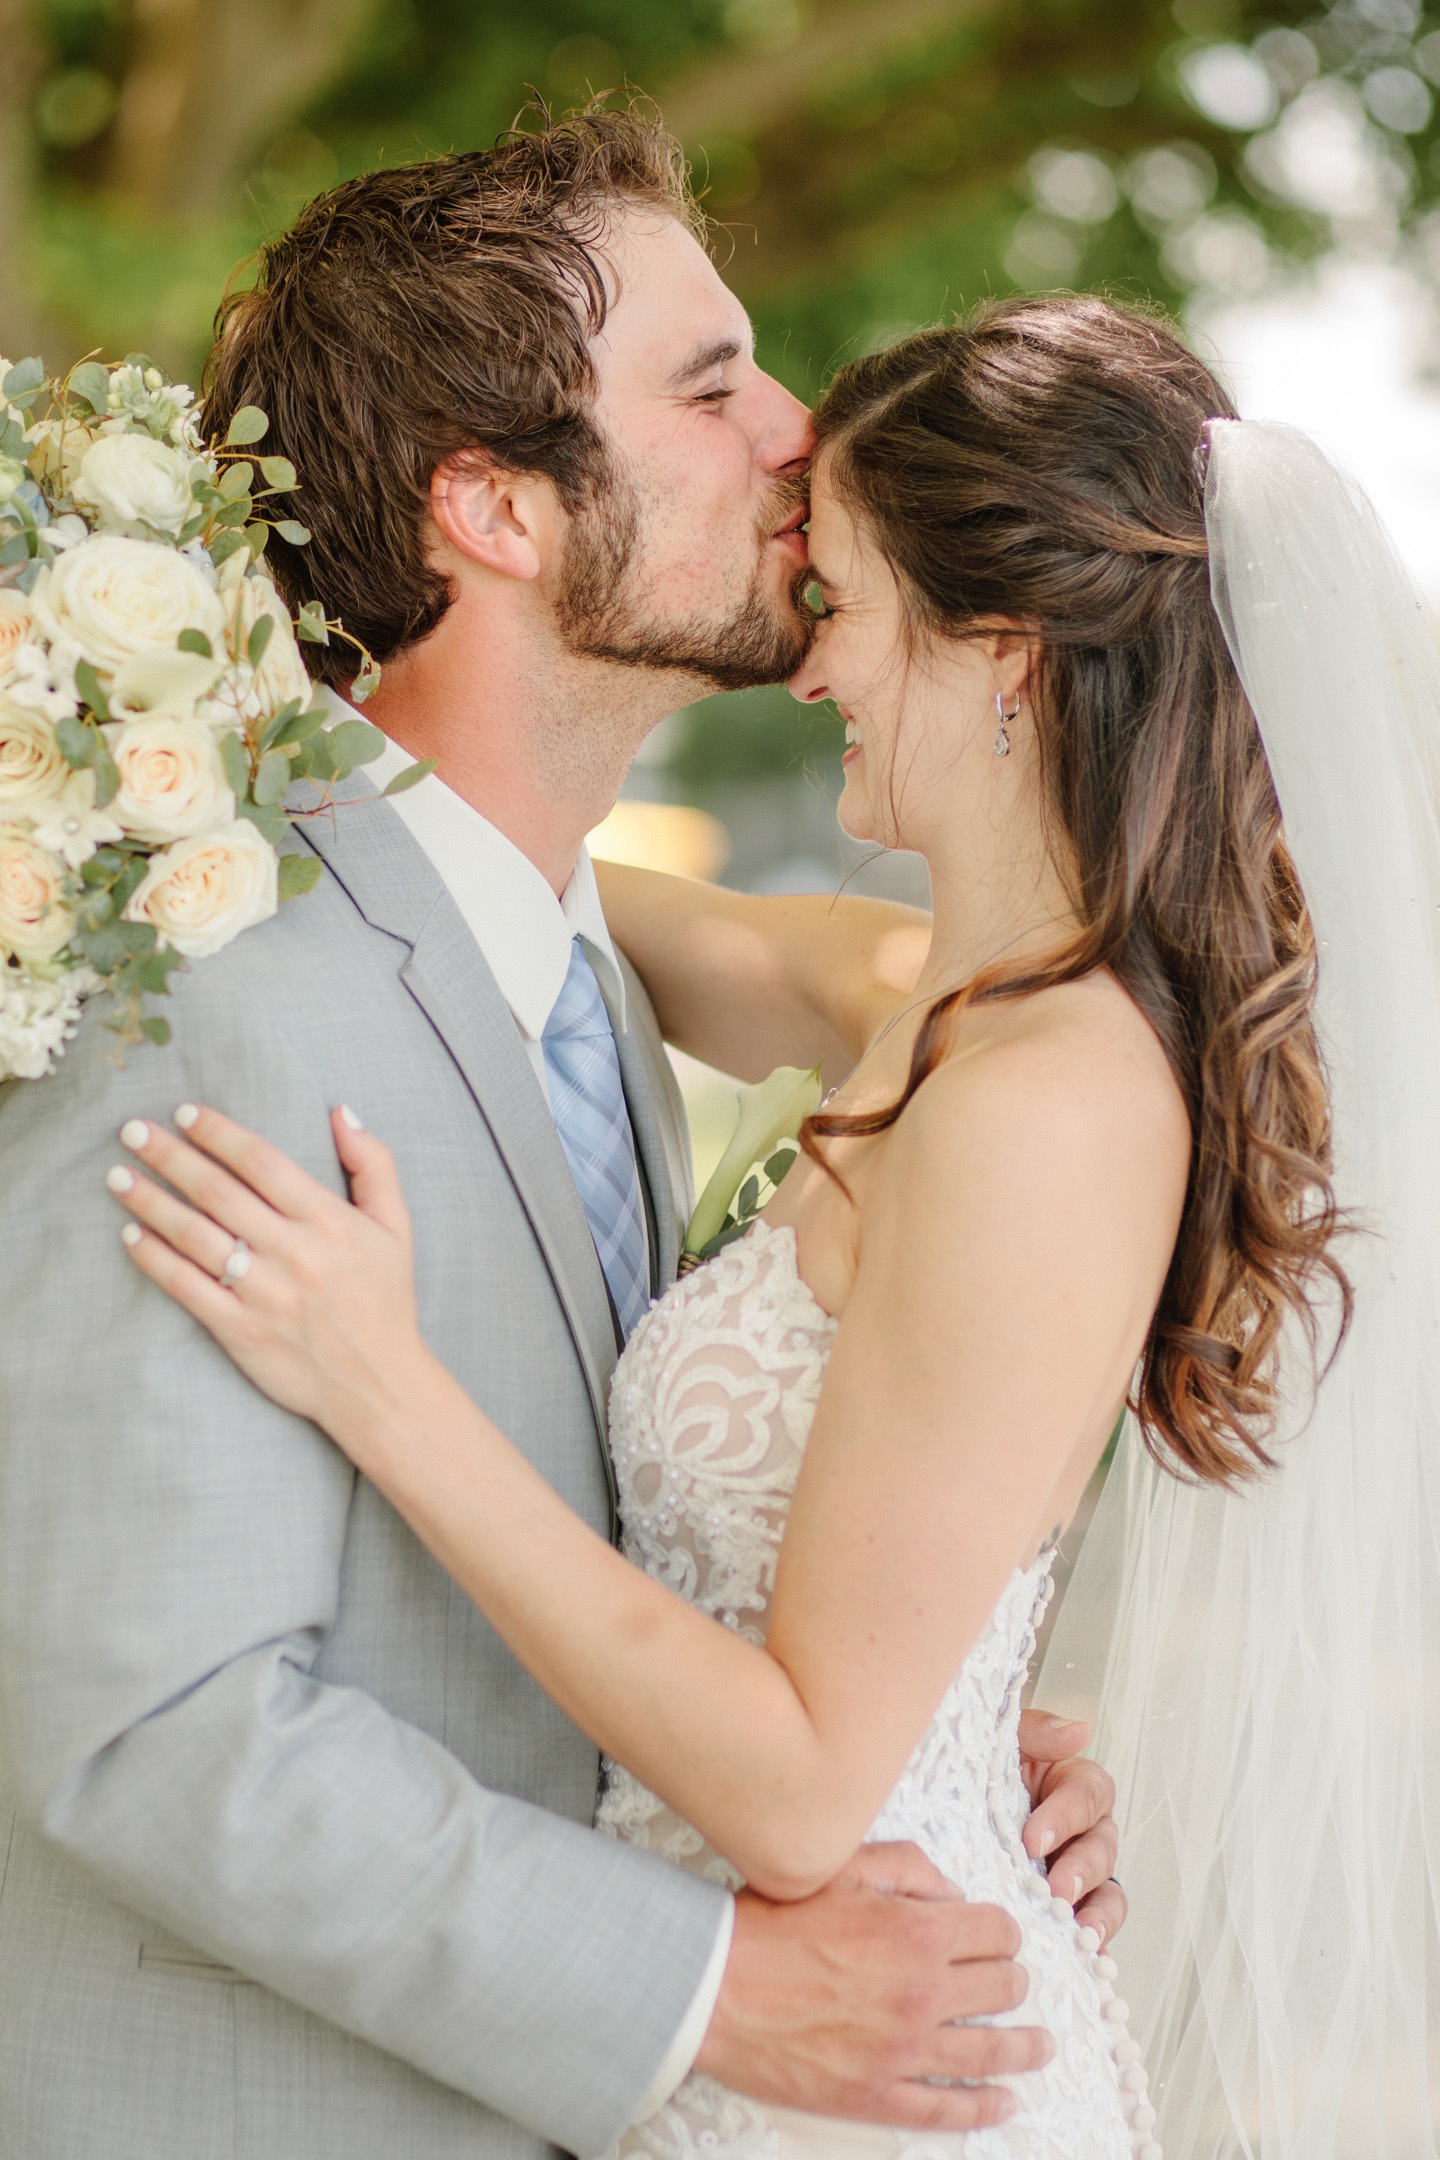 groom kissing bride on forehead and laughing together wedding day